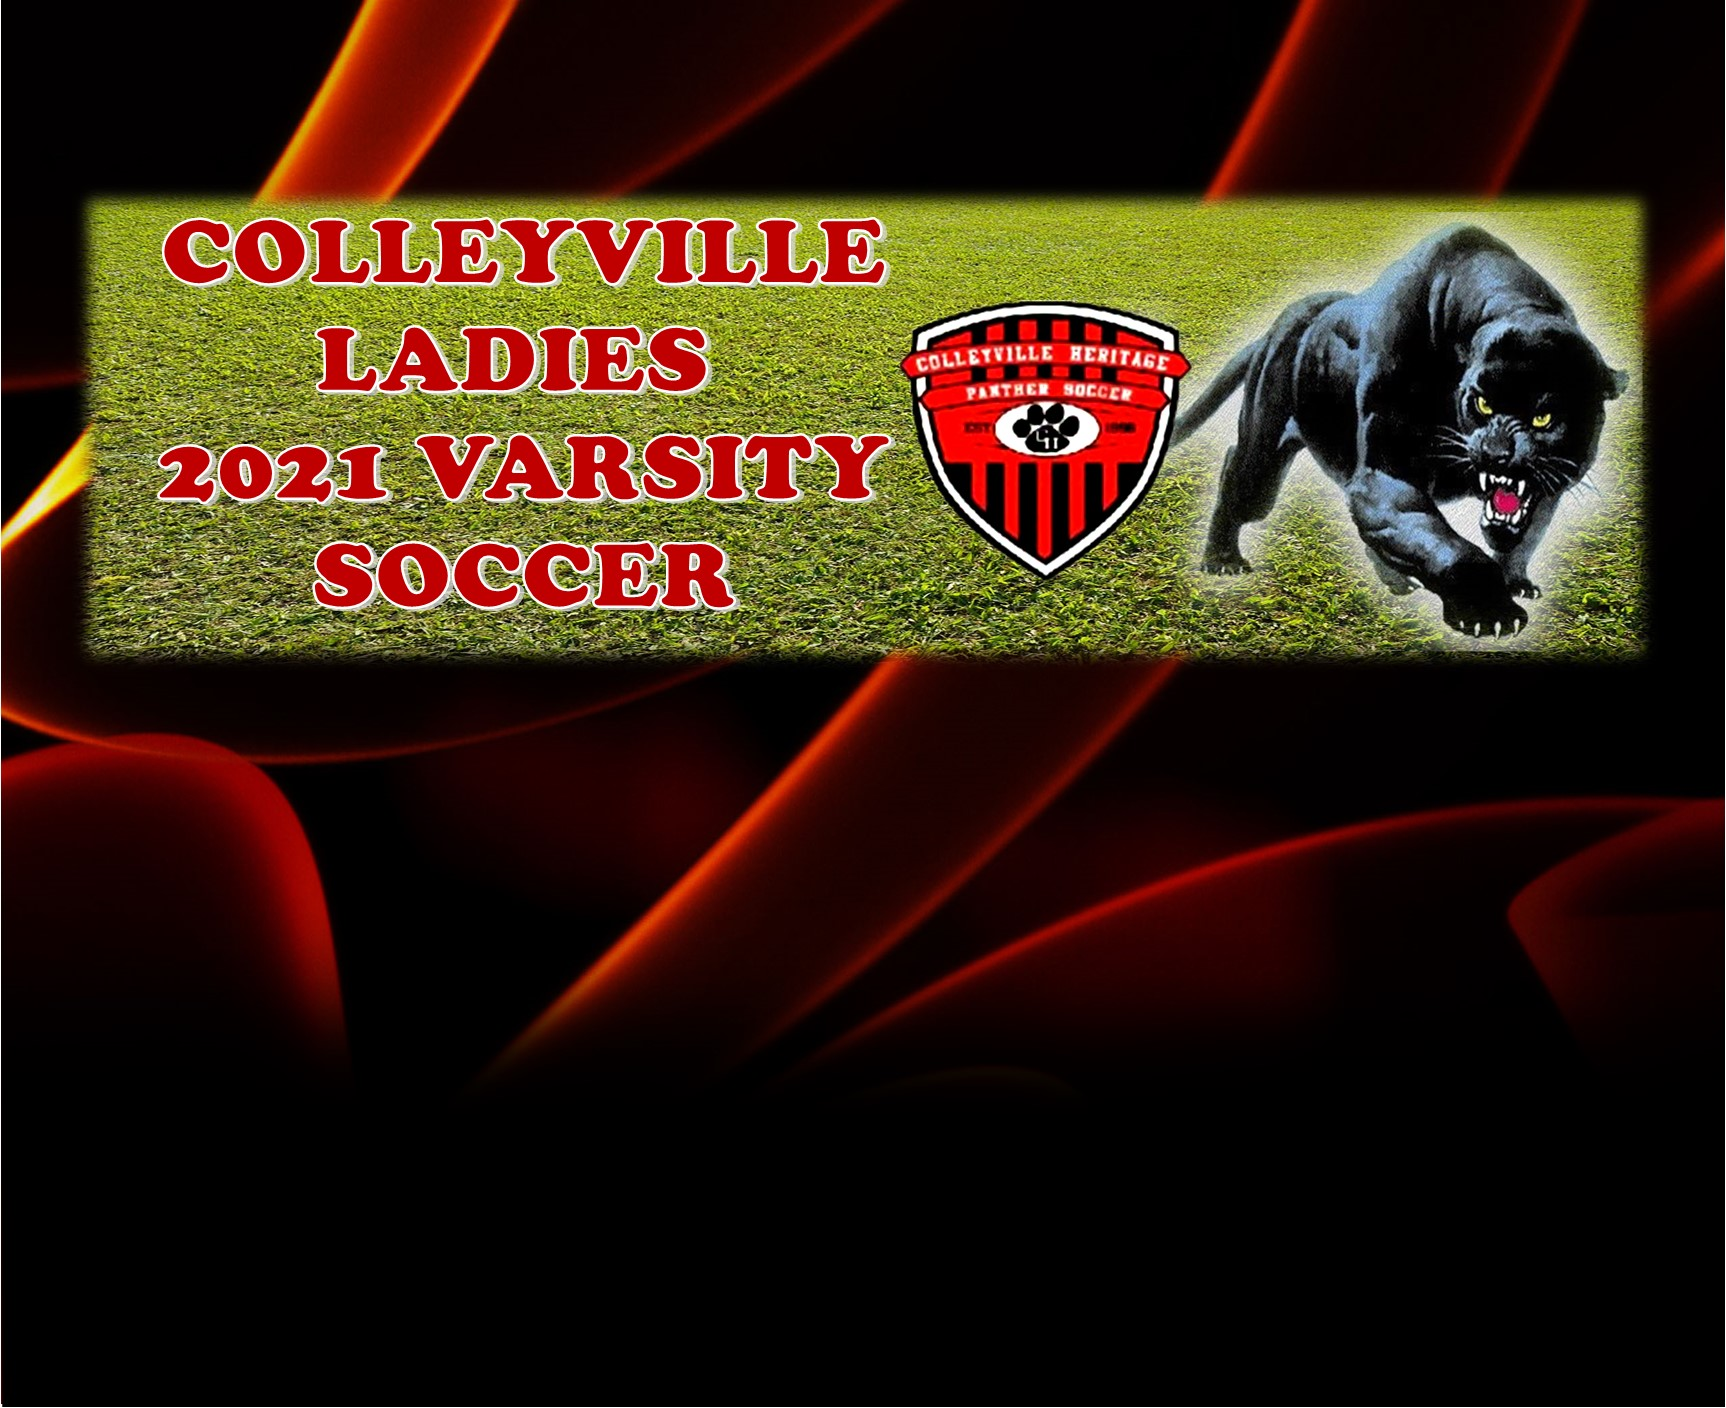 GCISD Ladies Soccer: Colleyville Panthers Triumph Over Burleson Elks In Overtime 4-3